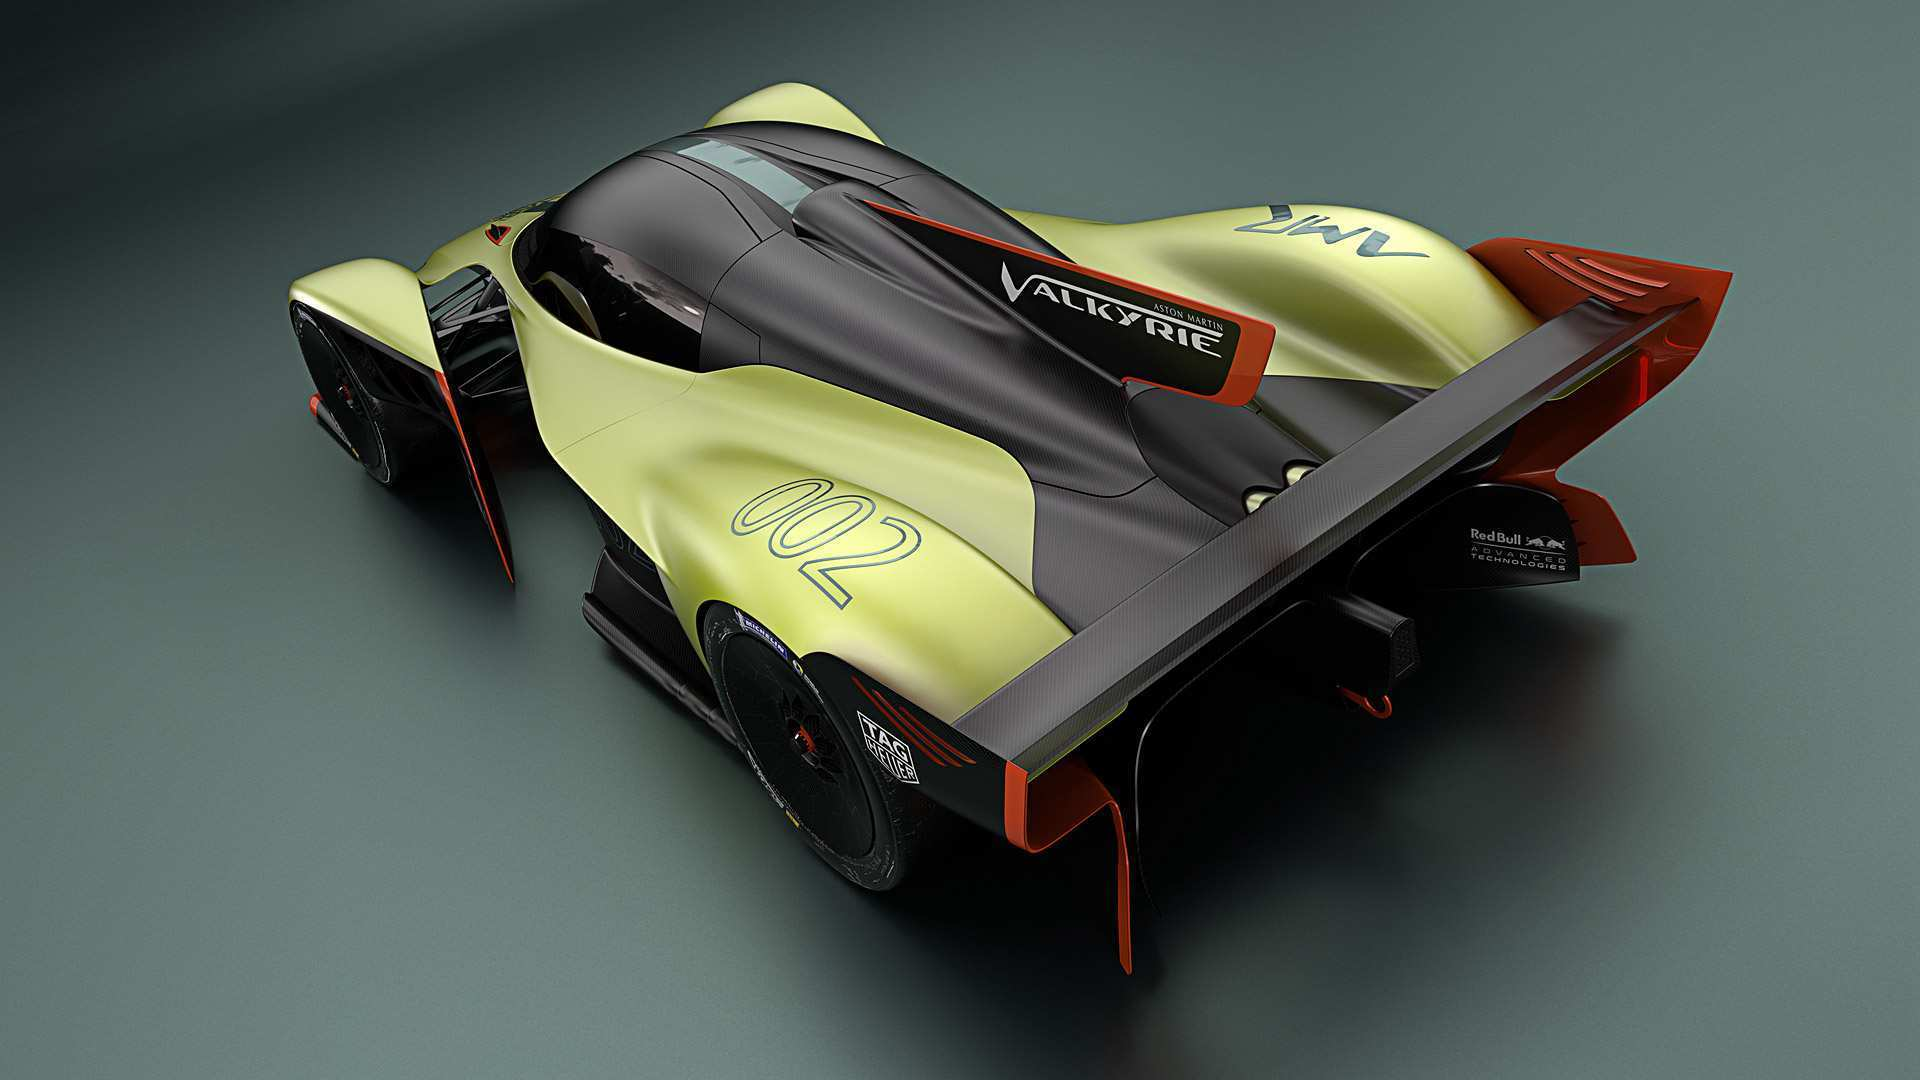 77 Concept of 2020 Aston Martin Valkyrie Reviews for 2020 Aston Martin Valkyrie